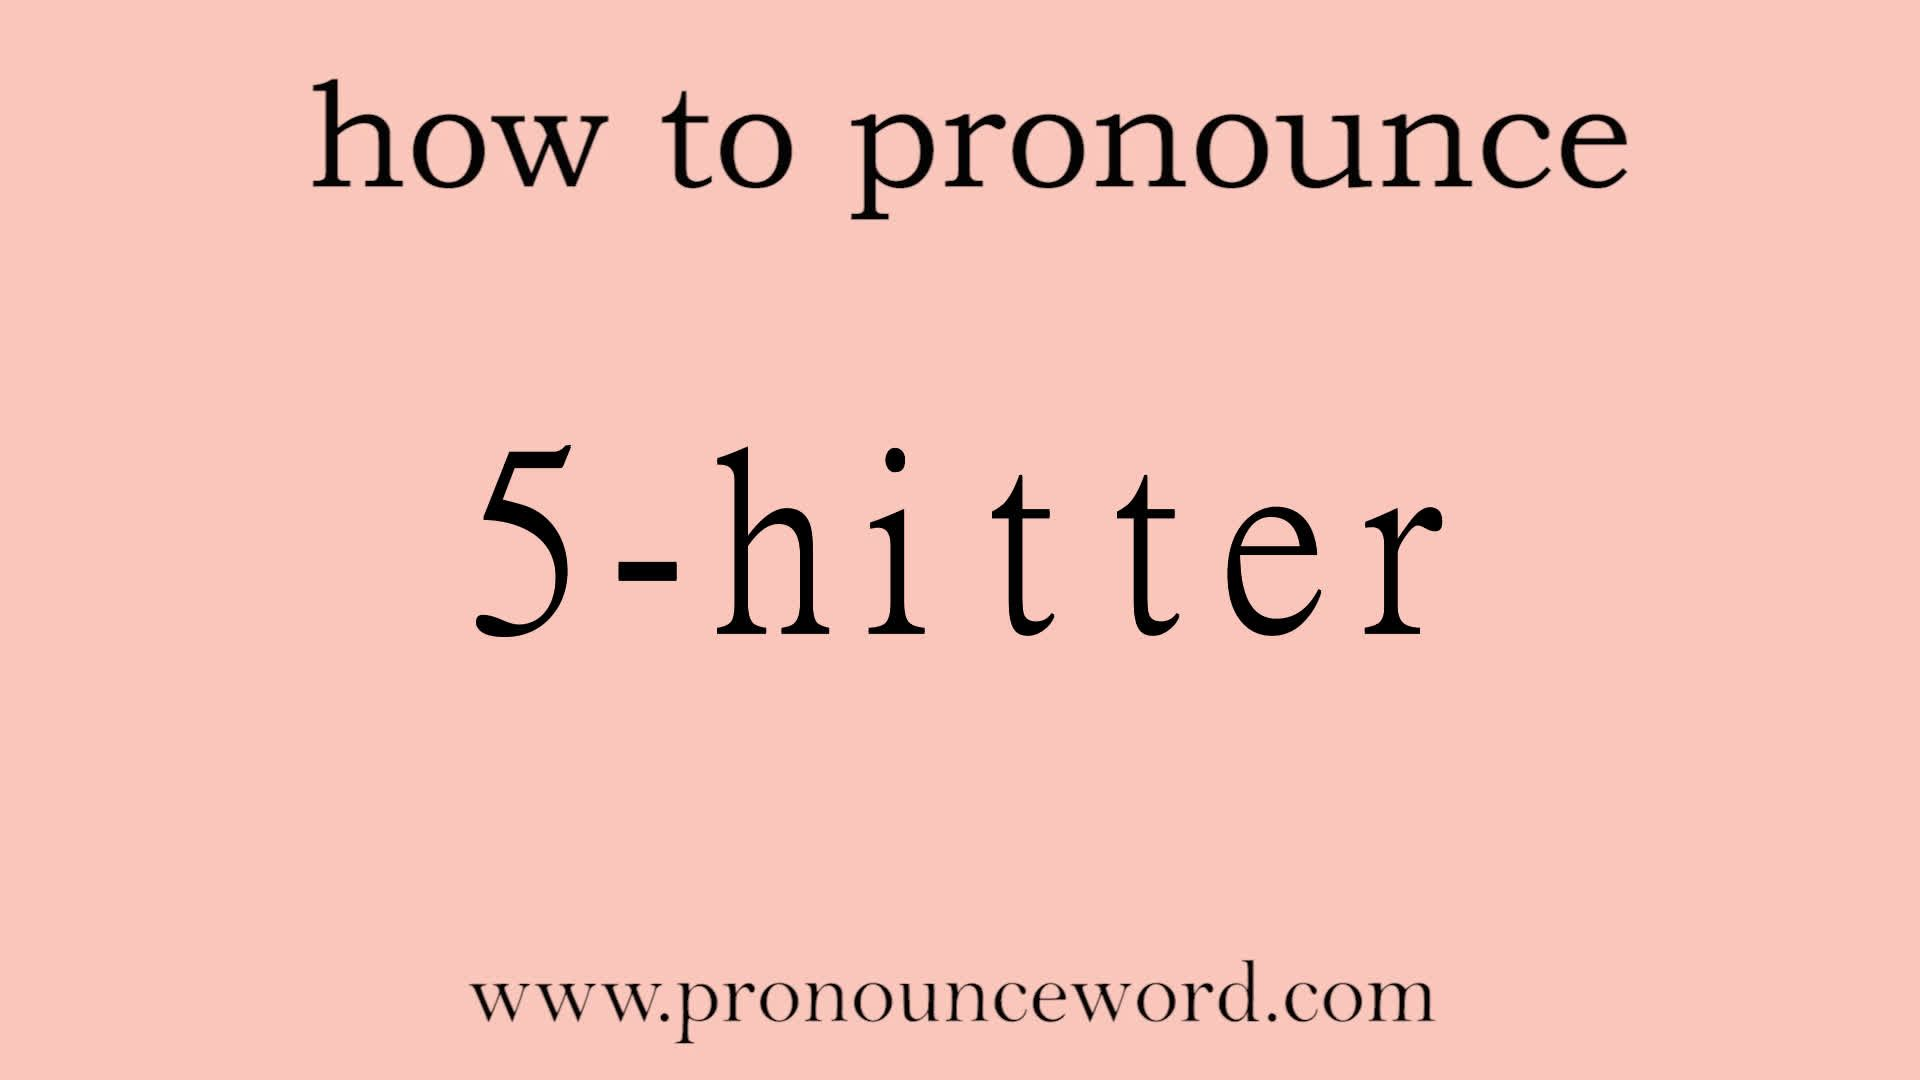 11-hitter. How to pronounce the english word 11-hitter .Start with 11